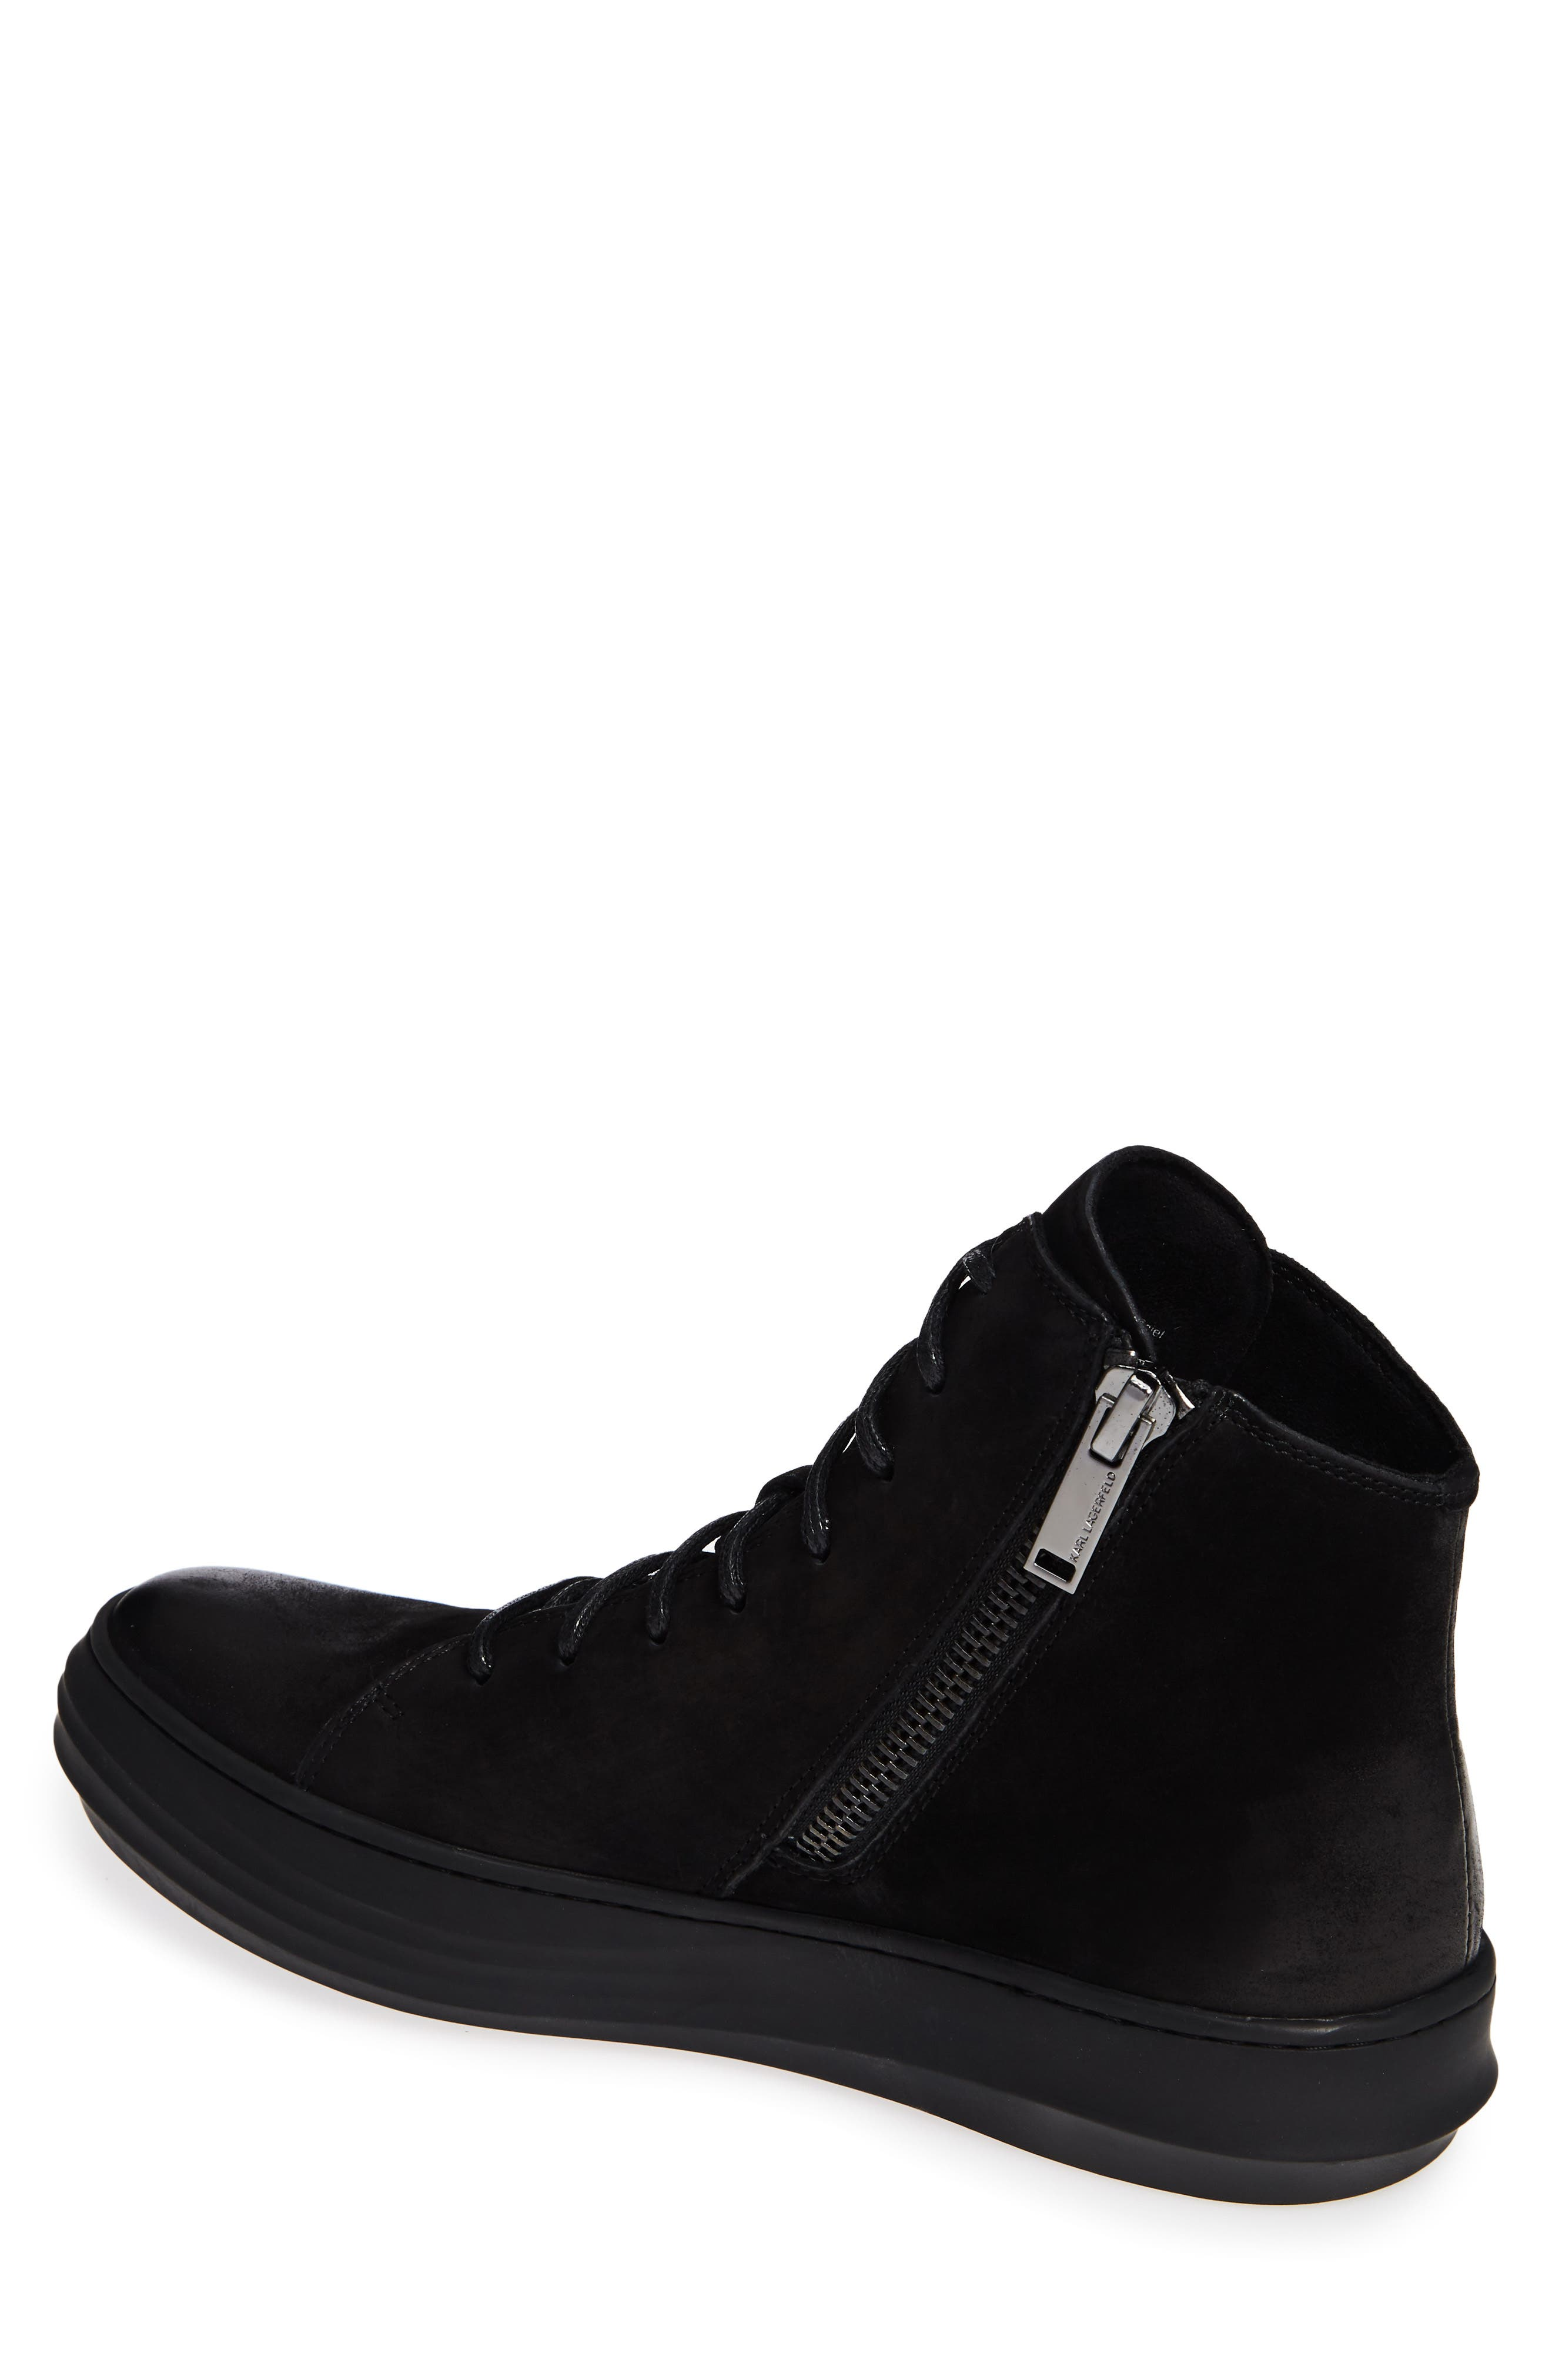 High Top Sneaker,                             Alternate thumbnail 2, color,                             BLACK LEATHER